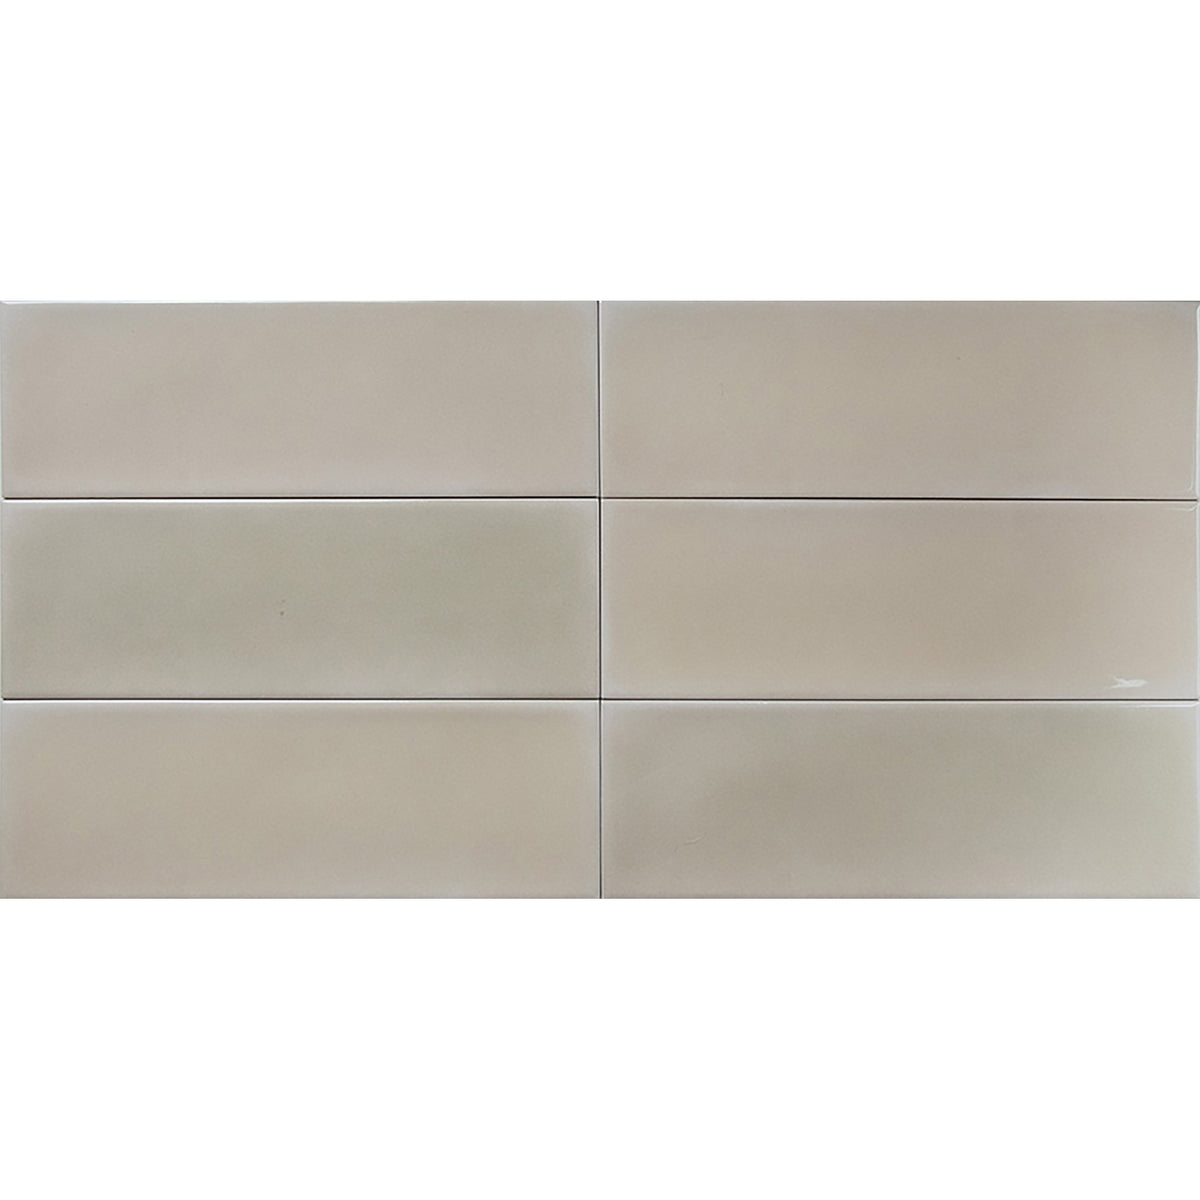 Tesoro - Hyde Park 4 in. x 12 in. Glossy Wall Tile - Amber Installed